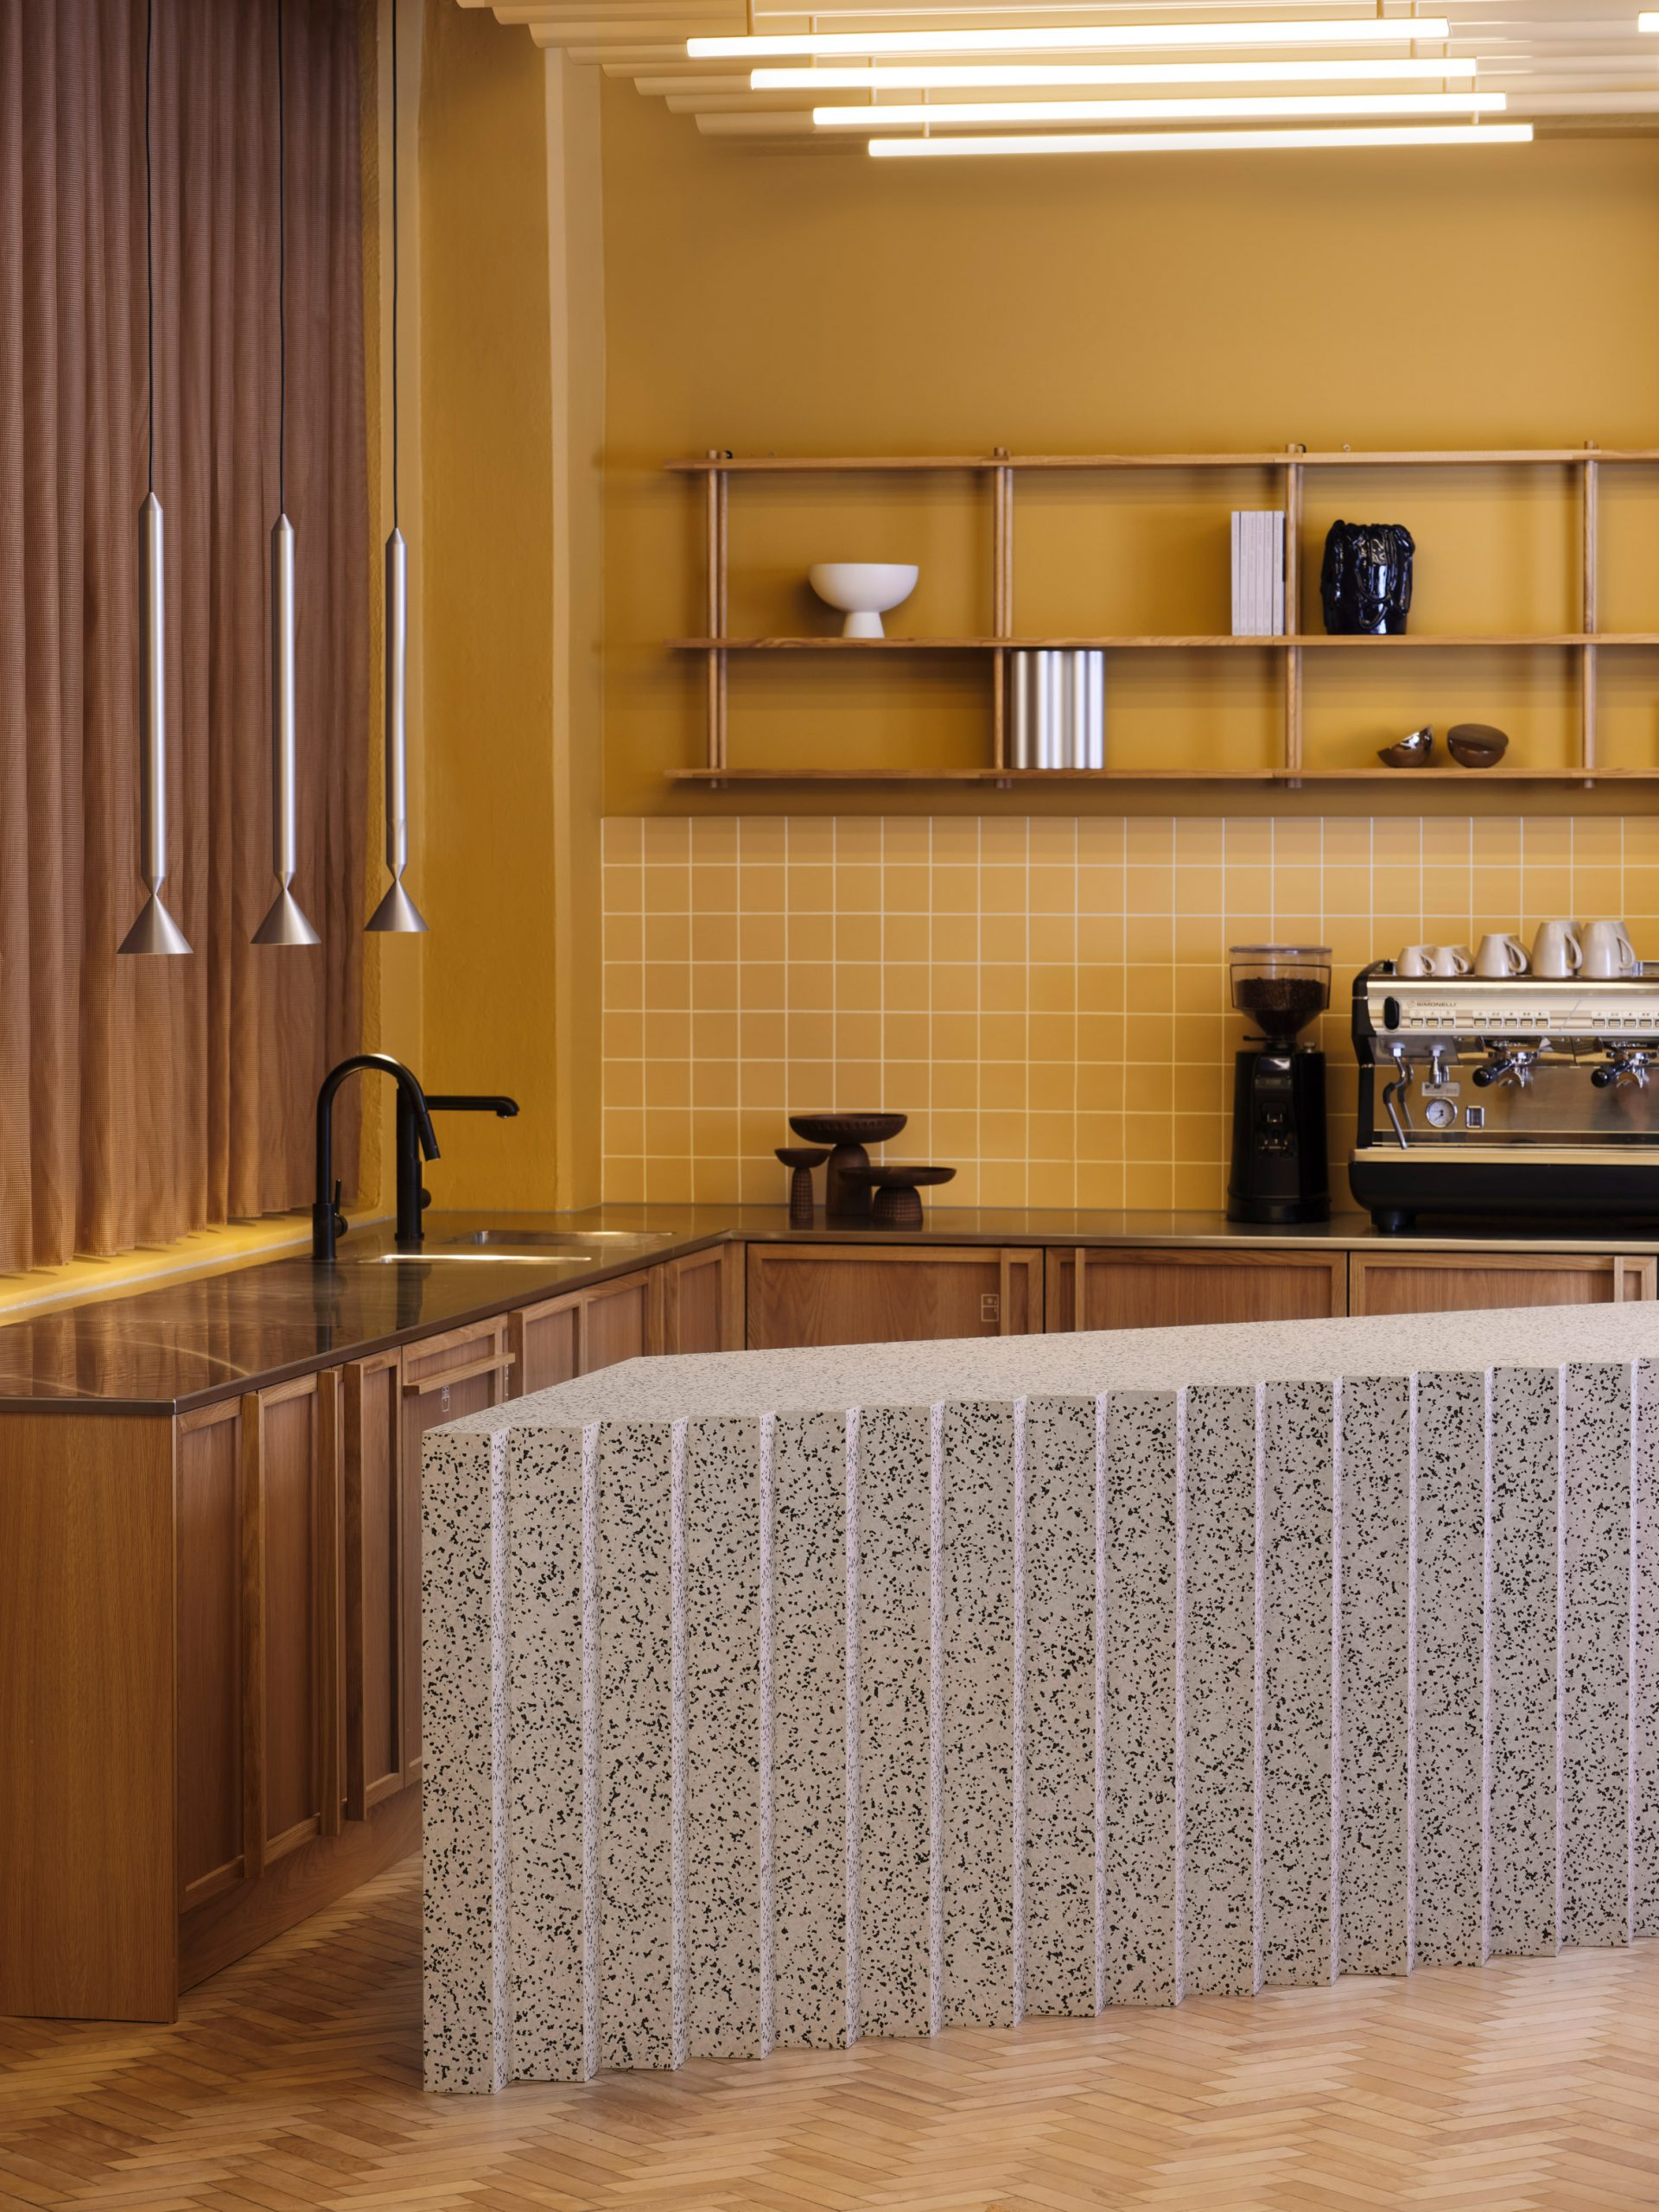 Yellow ceramic tiles and grey counter